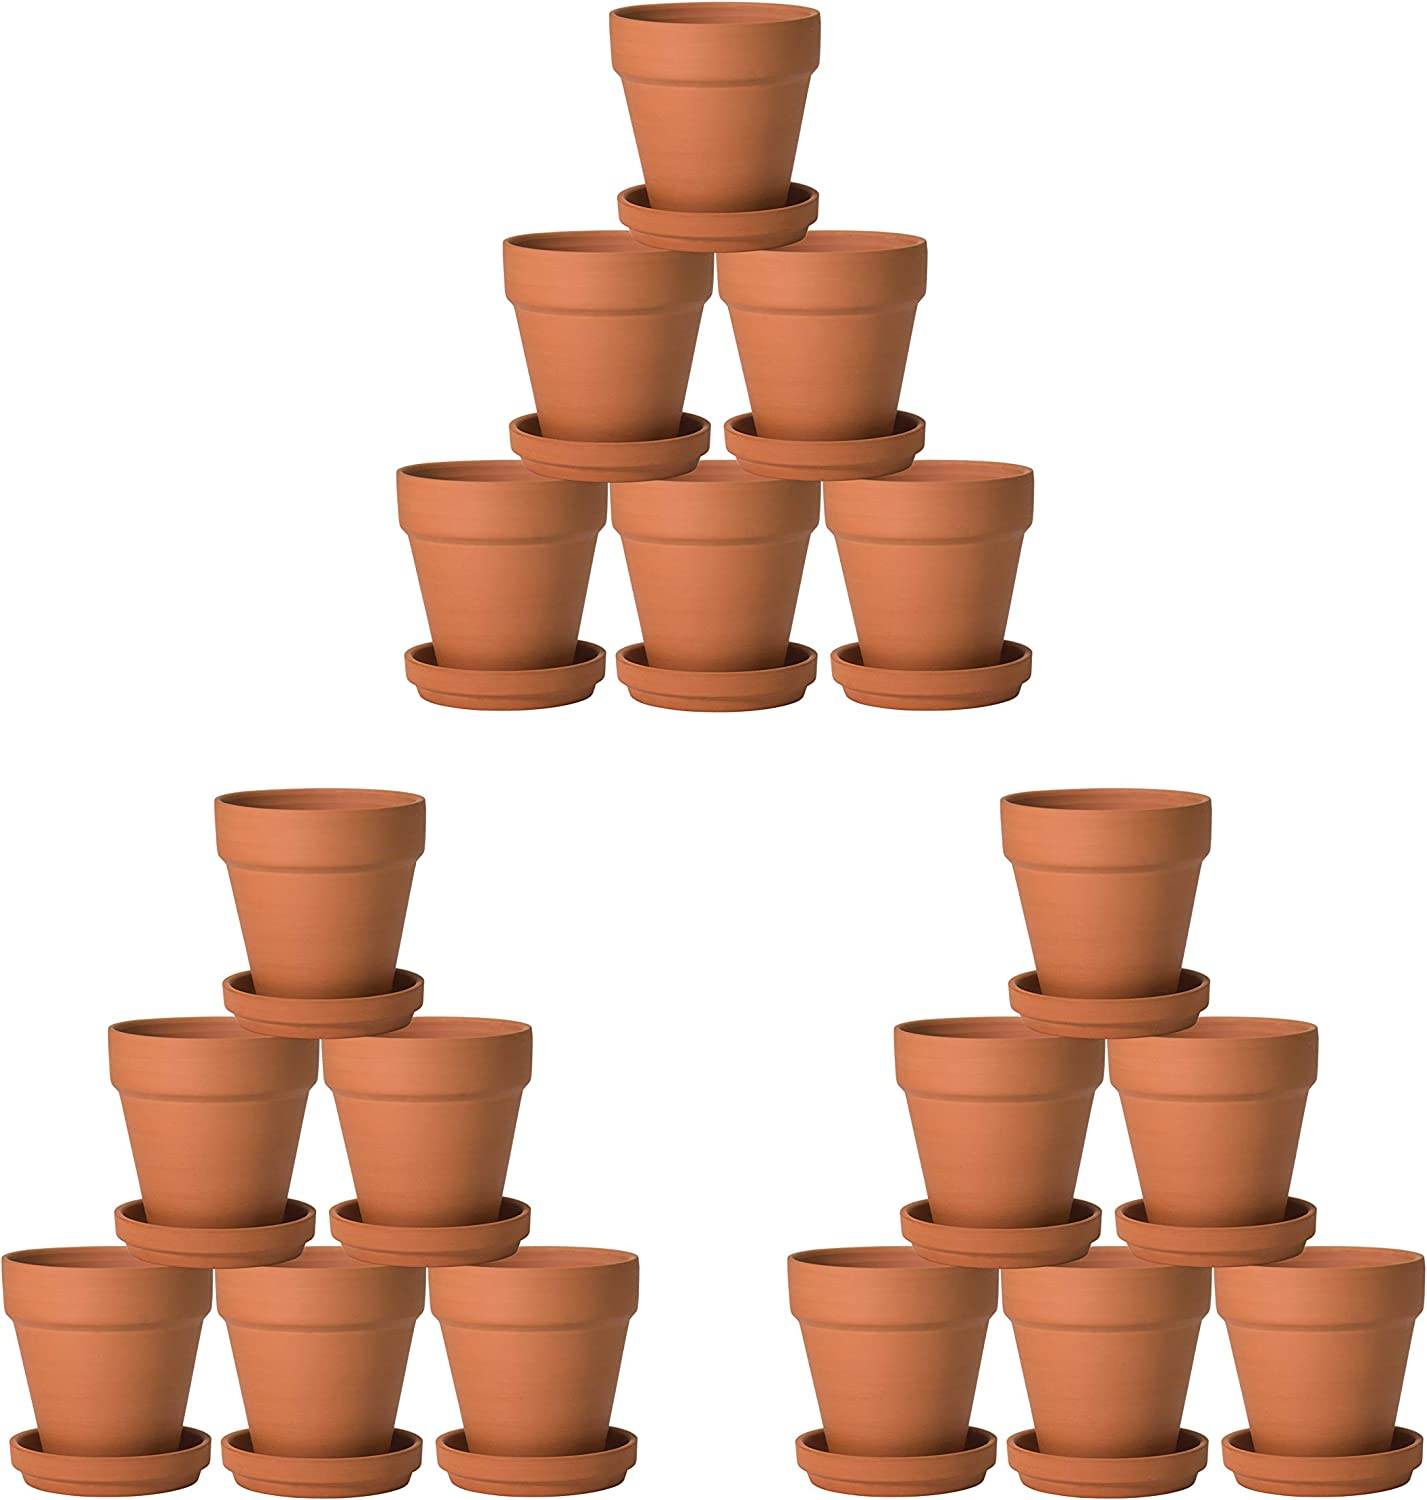 Pack of 18 Terracotta Pots with Saucers, 3 Inches Terra Cotta Clay Pots with Tray